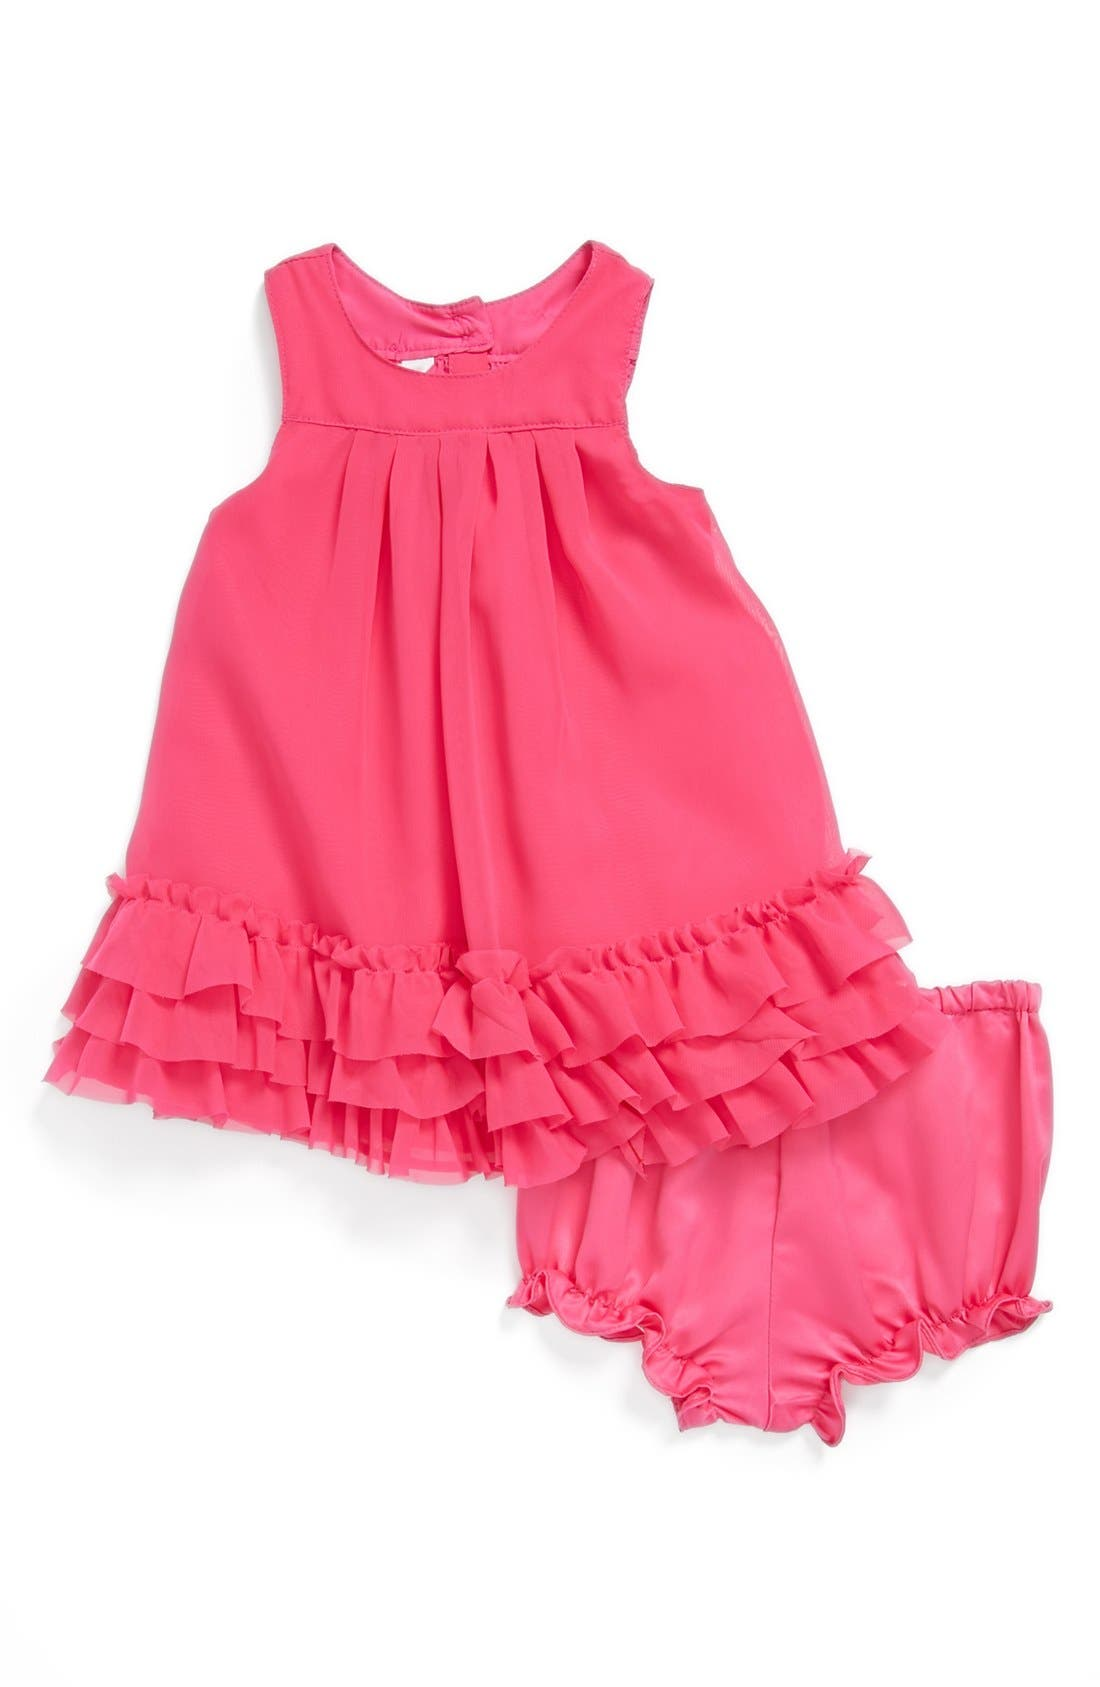 Main Image - Pippa & Julie Chiffon Dress & Bloomers (Baby Girls)